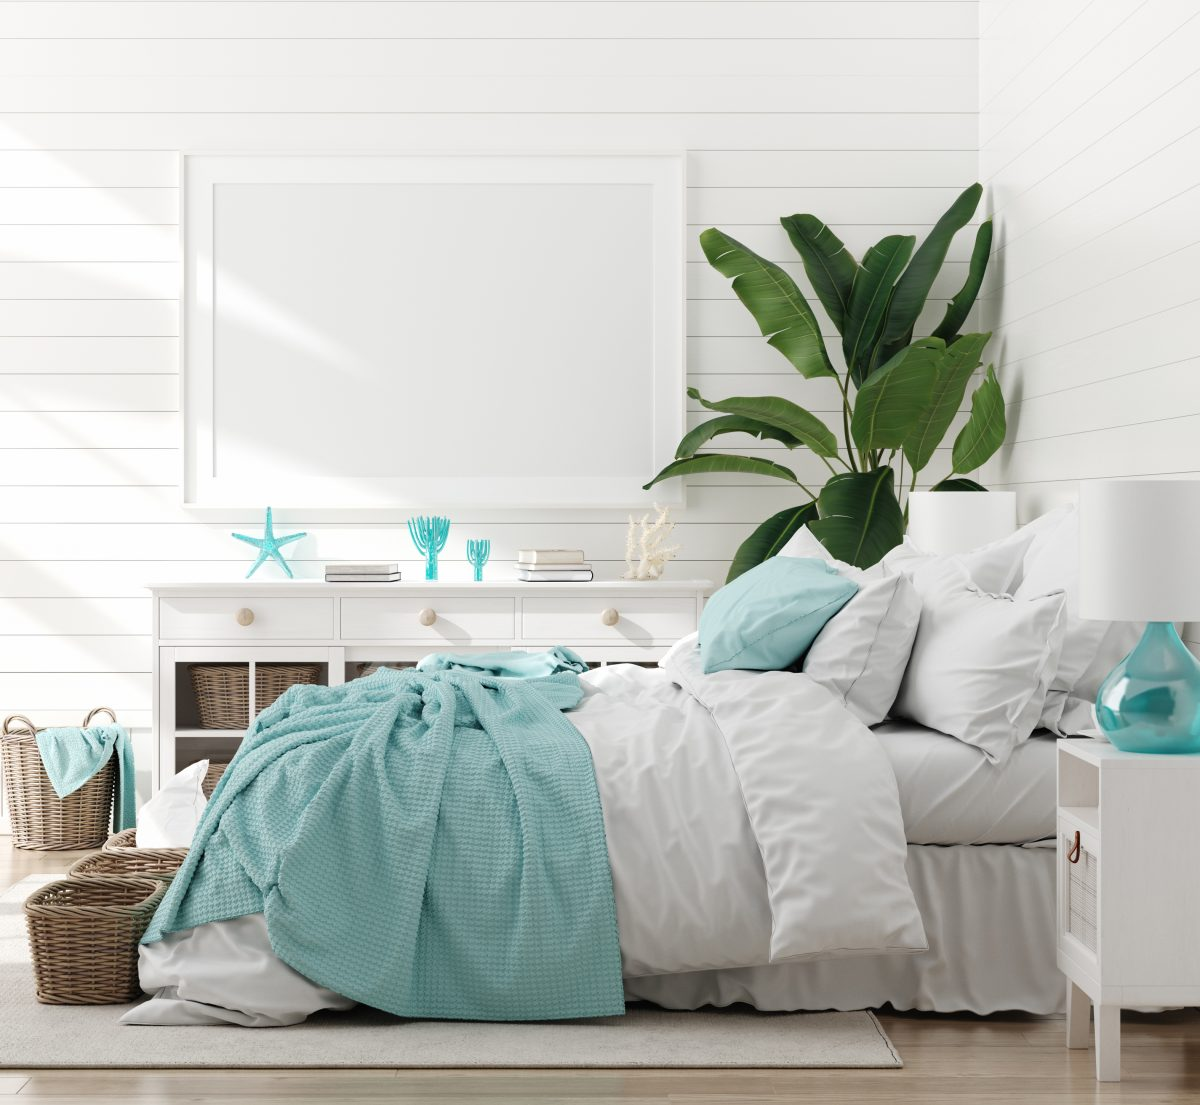 This marine themed room uses color, plants, and a few small accent pieces to bring together a beach feel.